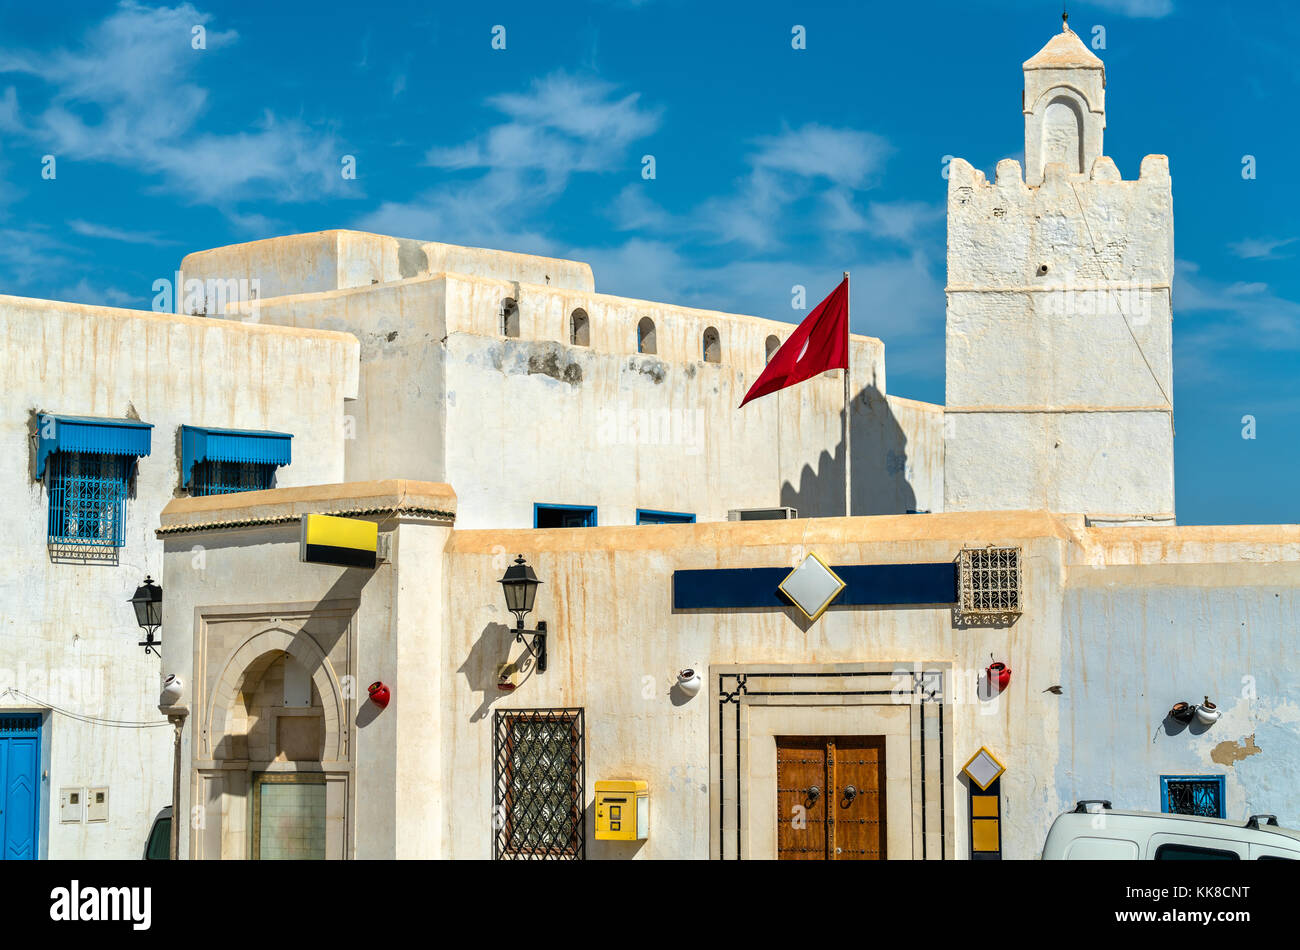 Traditional houses in Medina of Kairouan. A UNESCO world heritage site in Tunisia - Stock Image